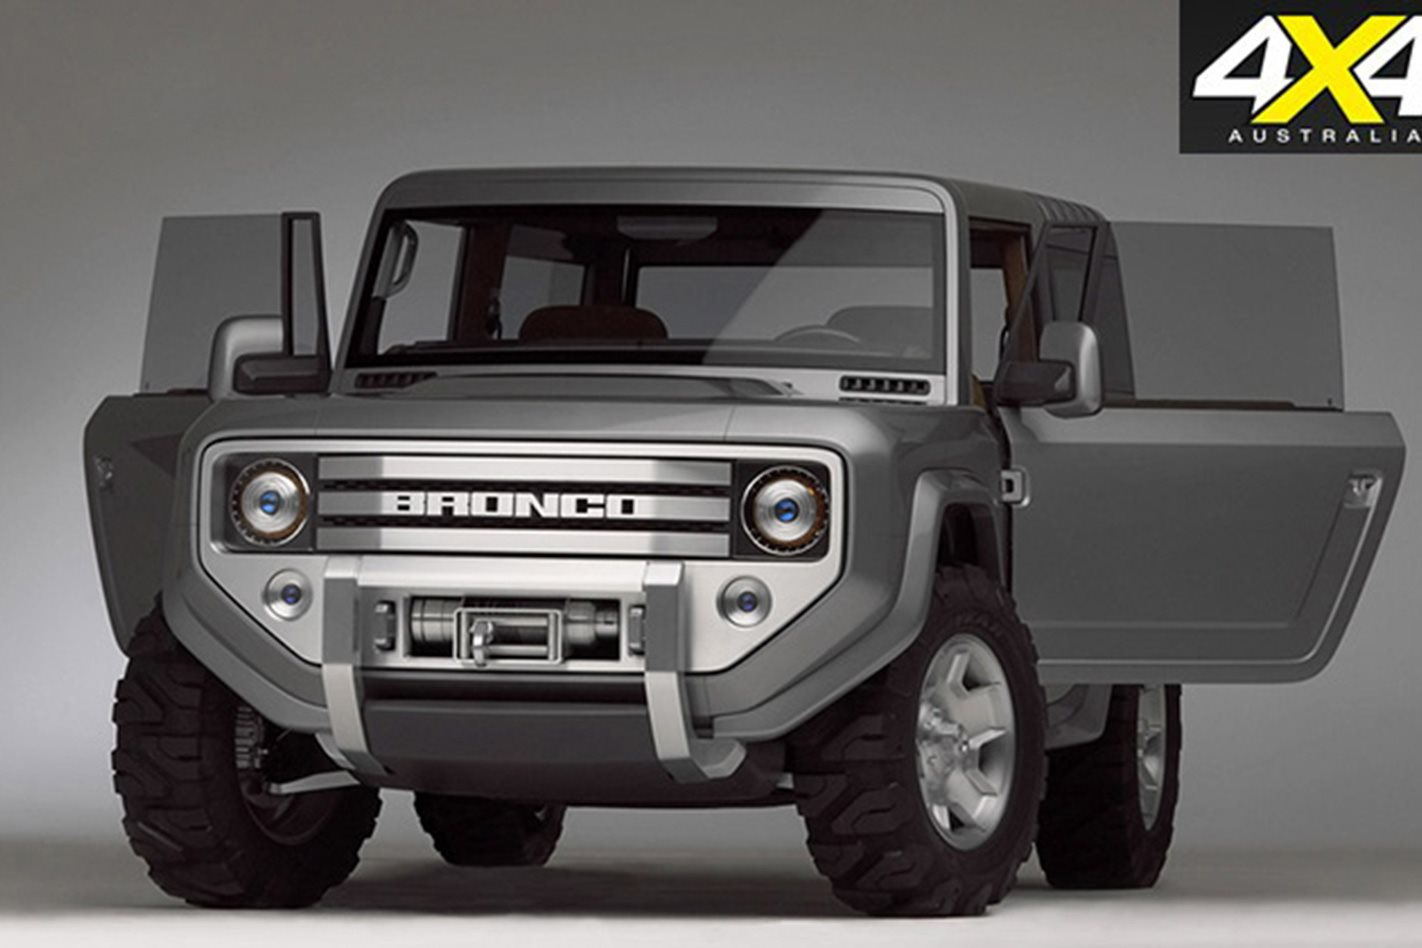 2004 Ford Bronco Concept car emerges in The Rock's new film